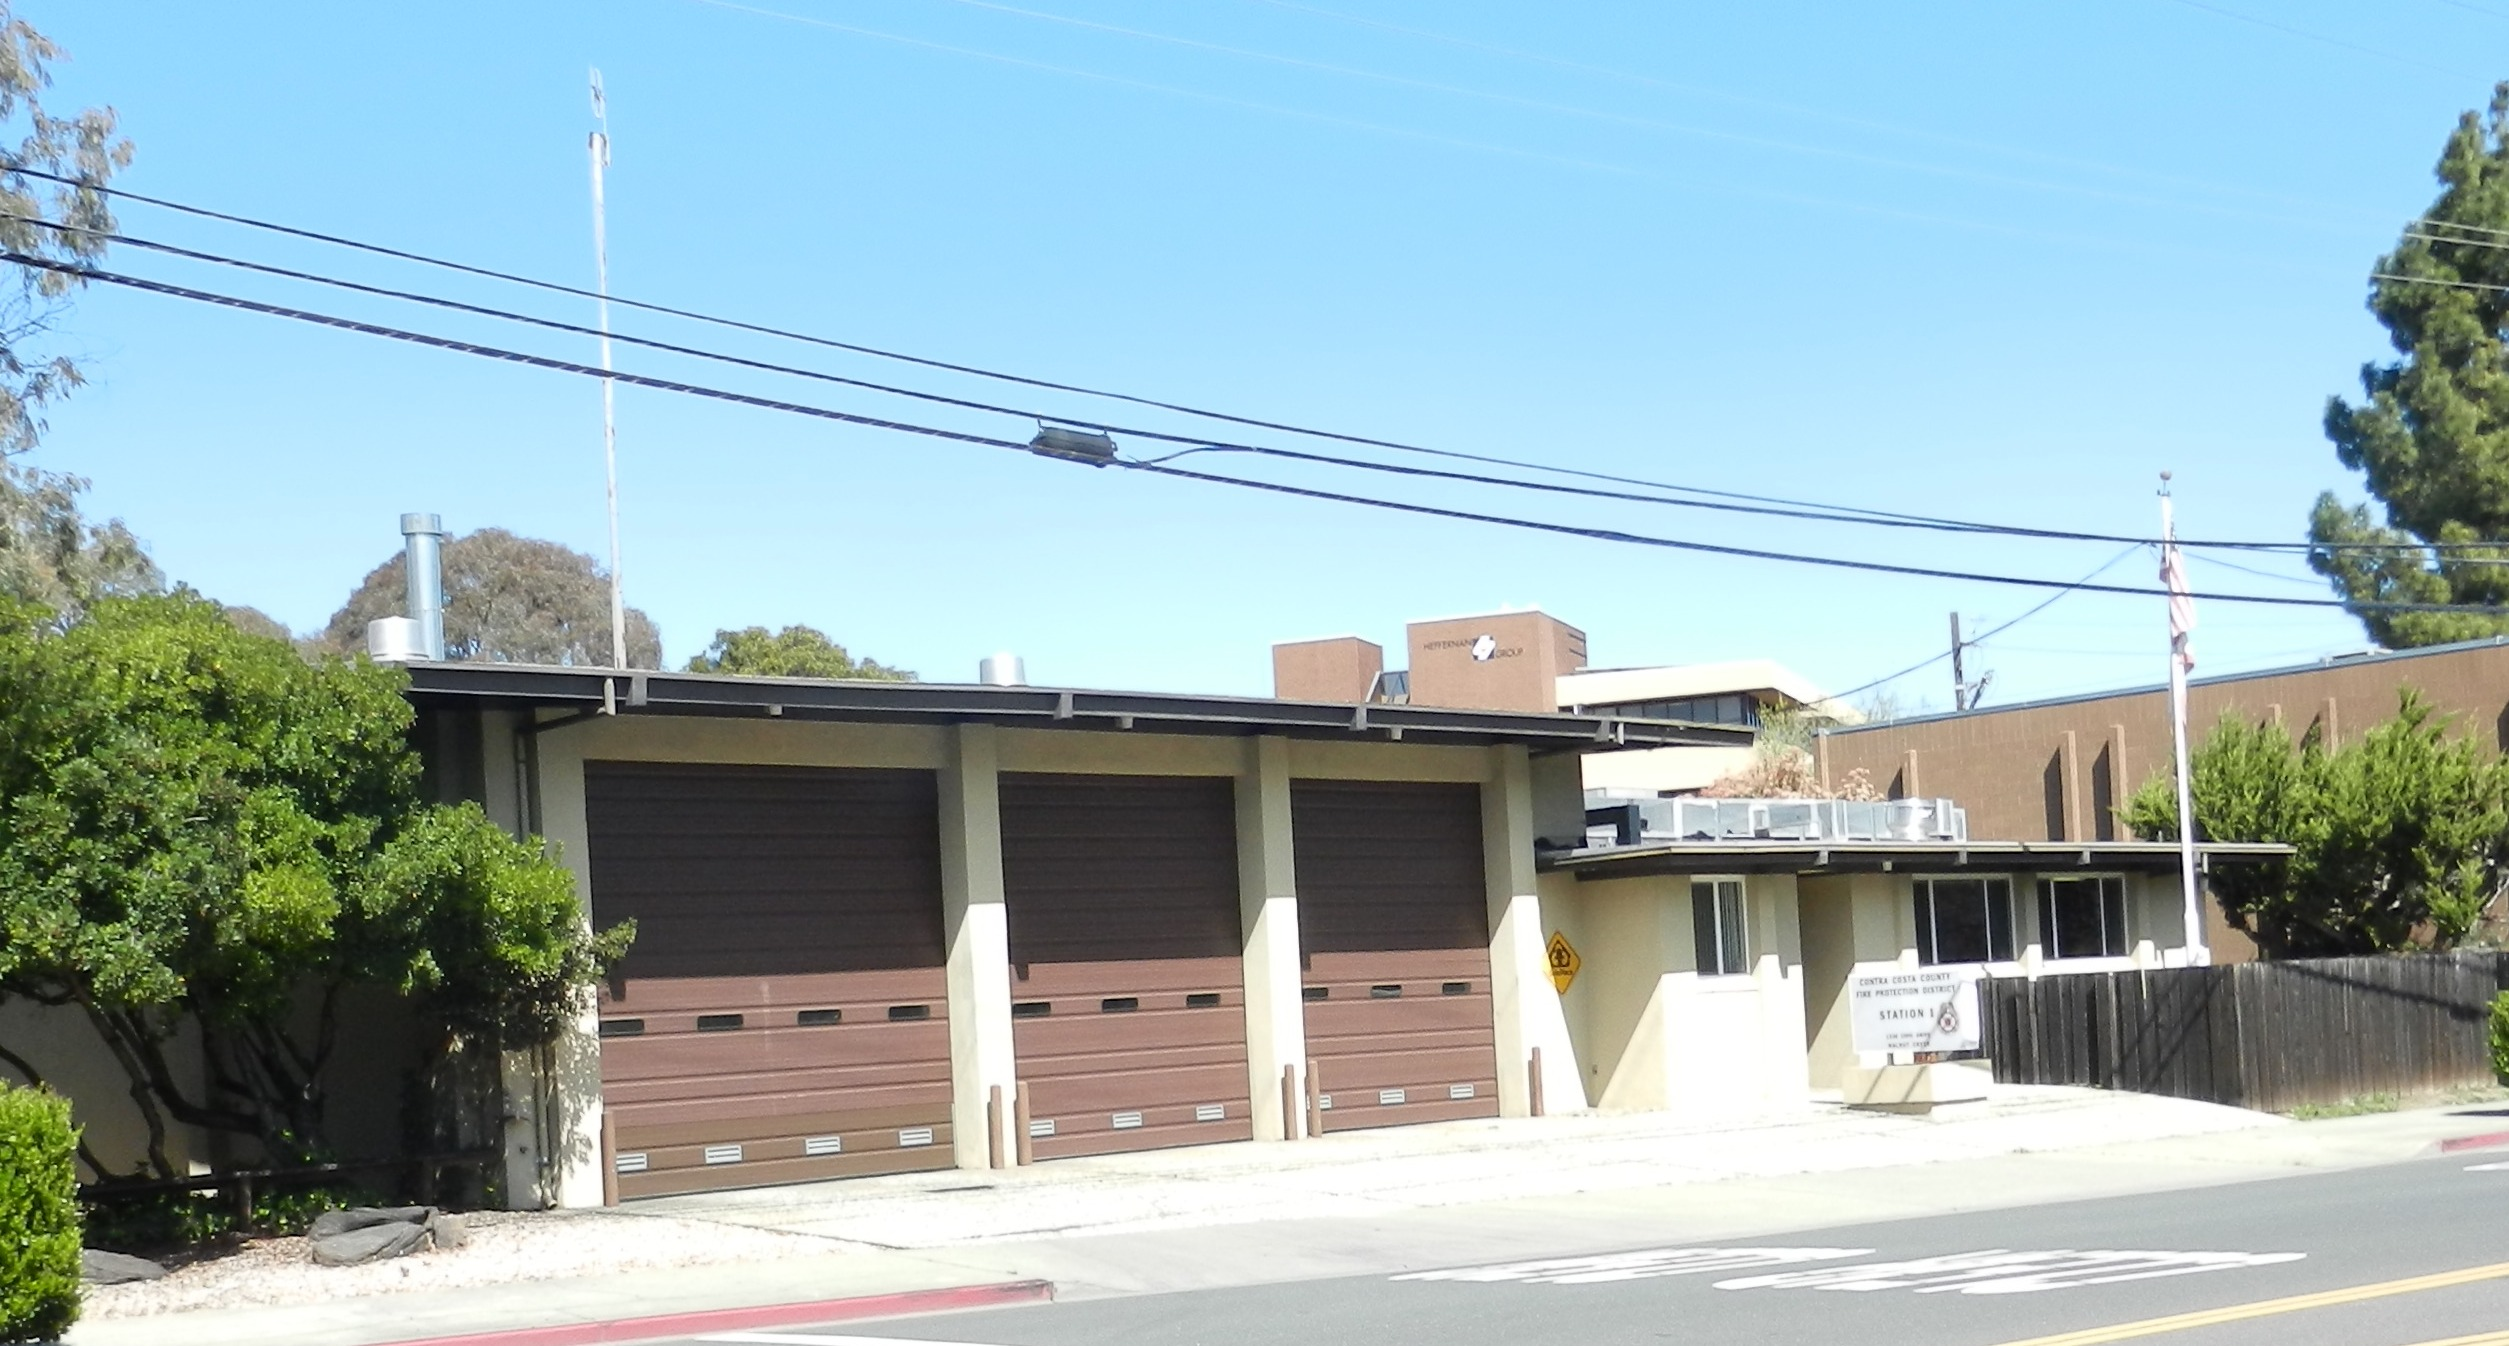 History of Contra Costa County Fire Districts